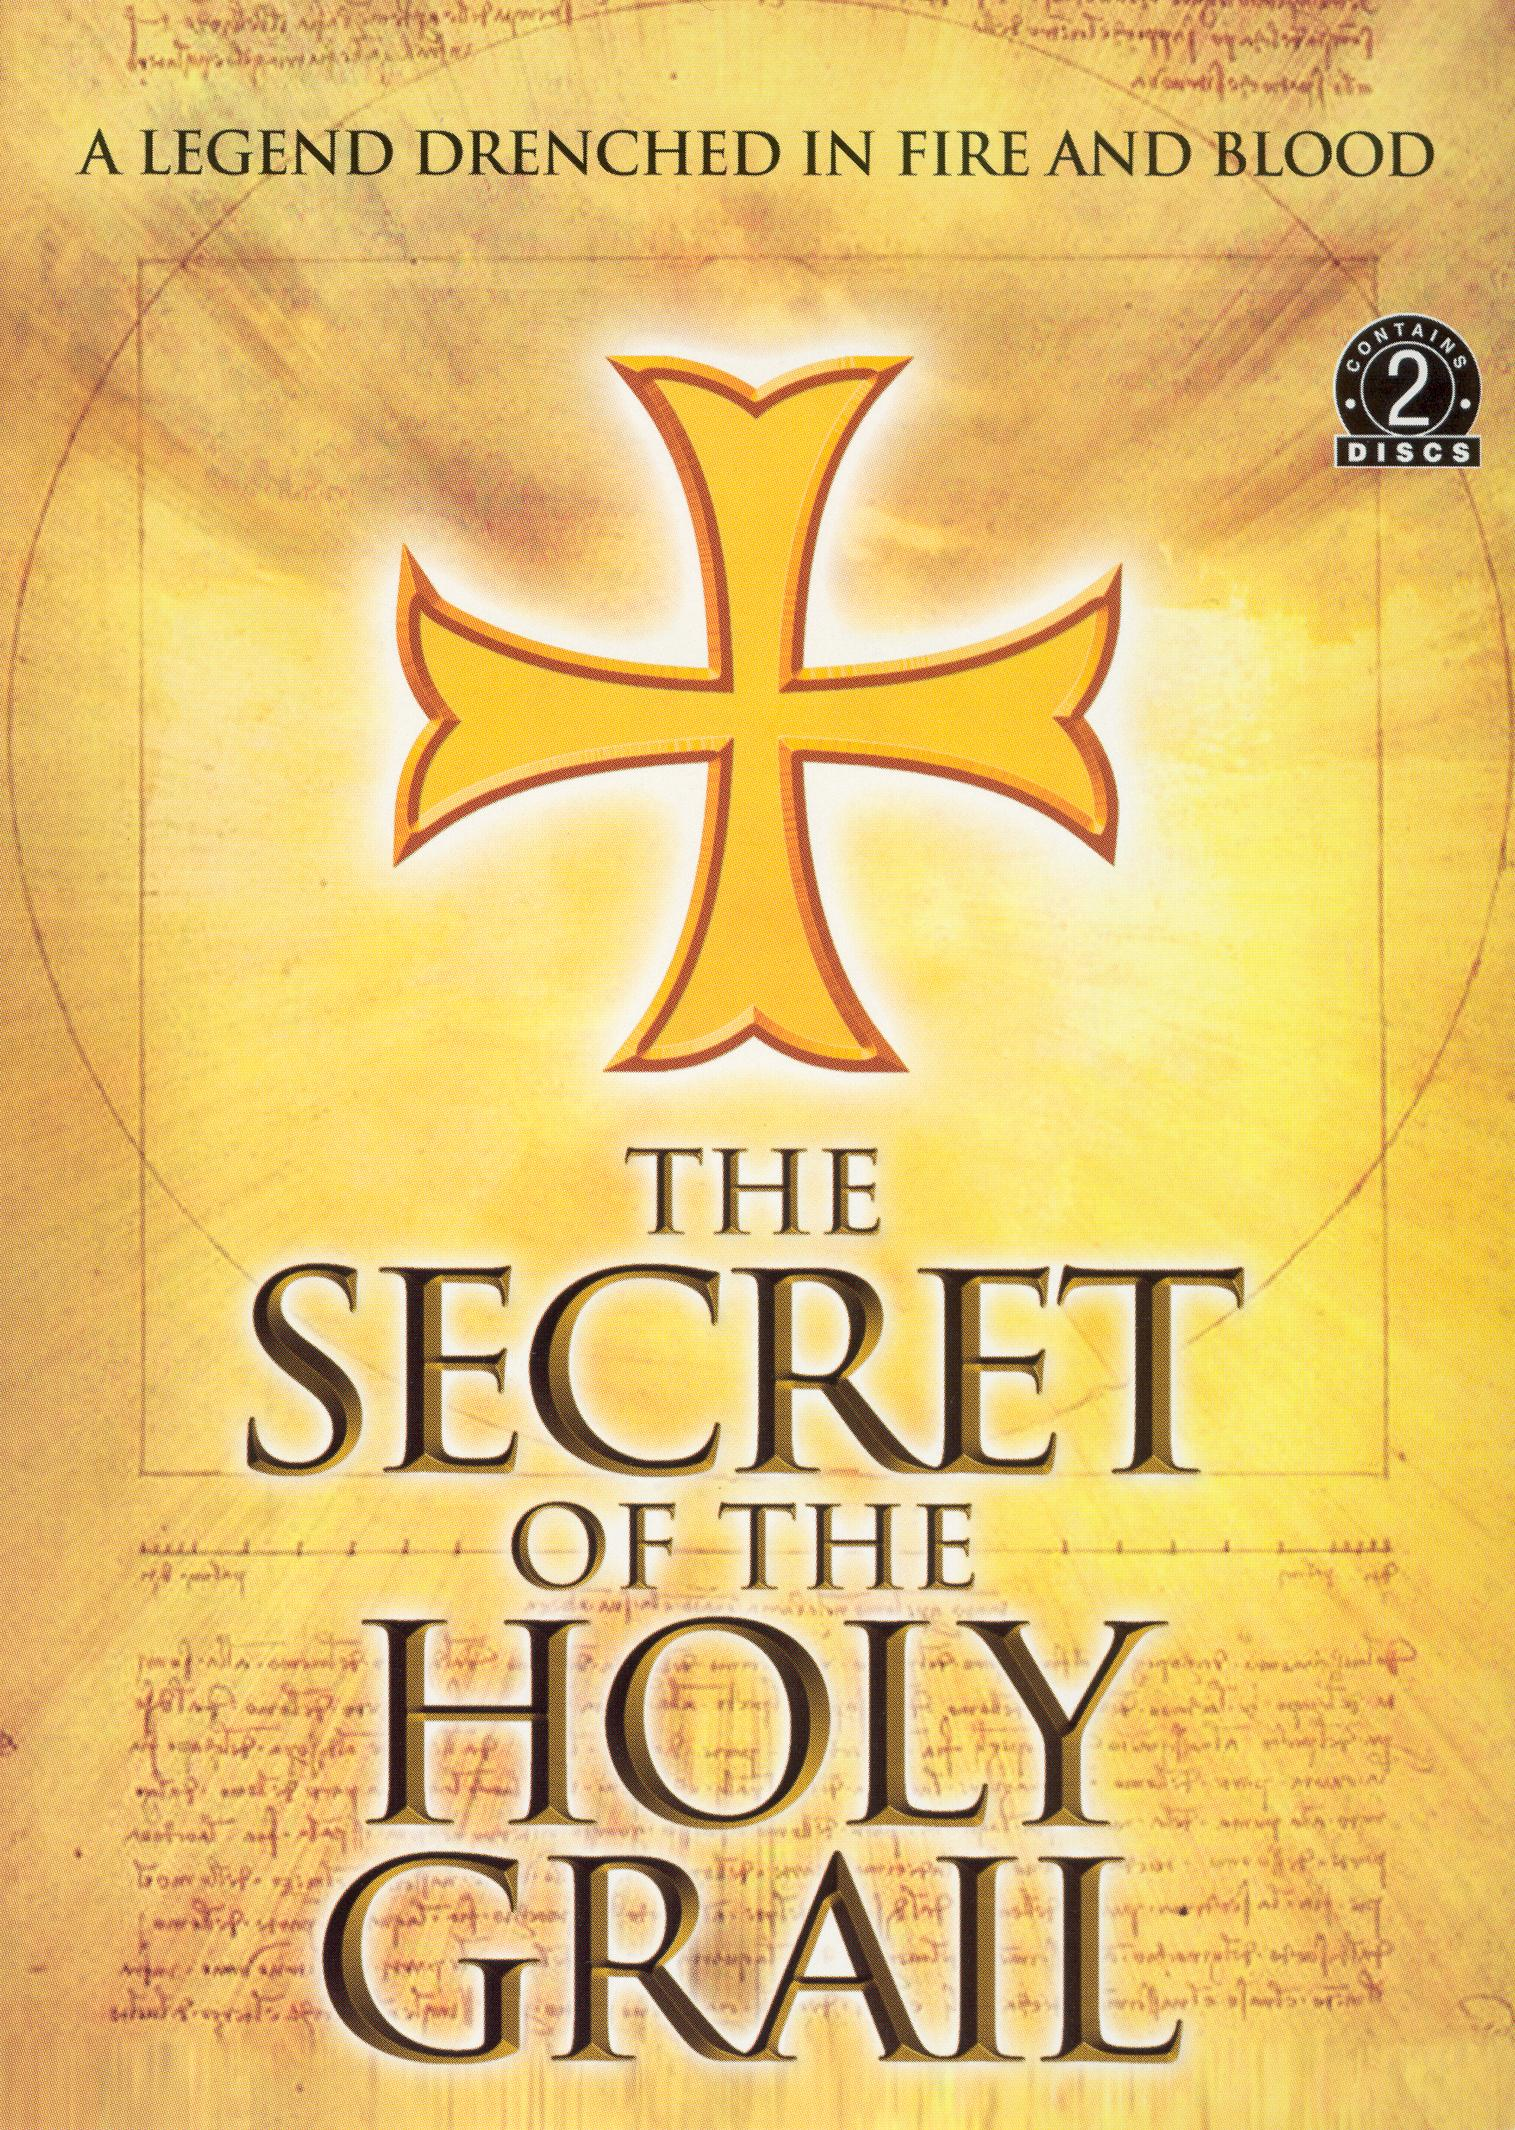 The Secret of the Holy Grail